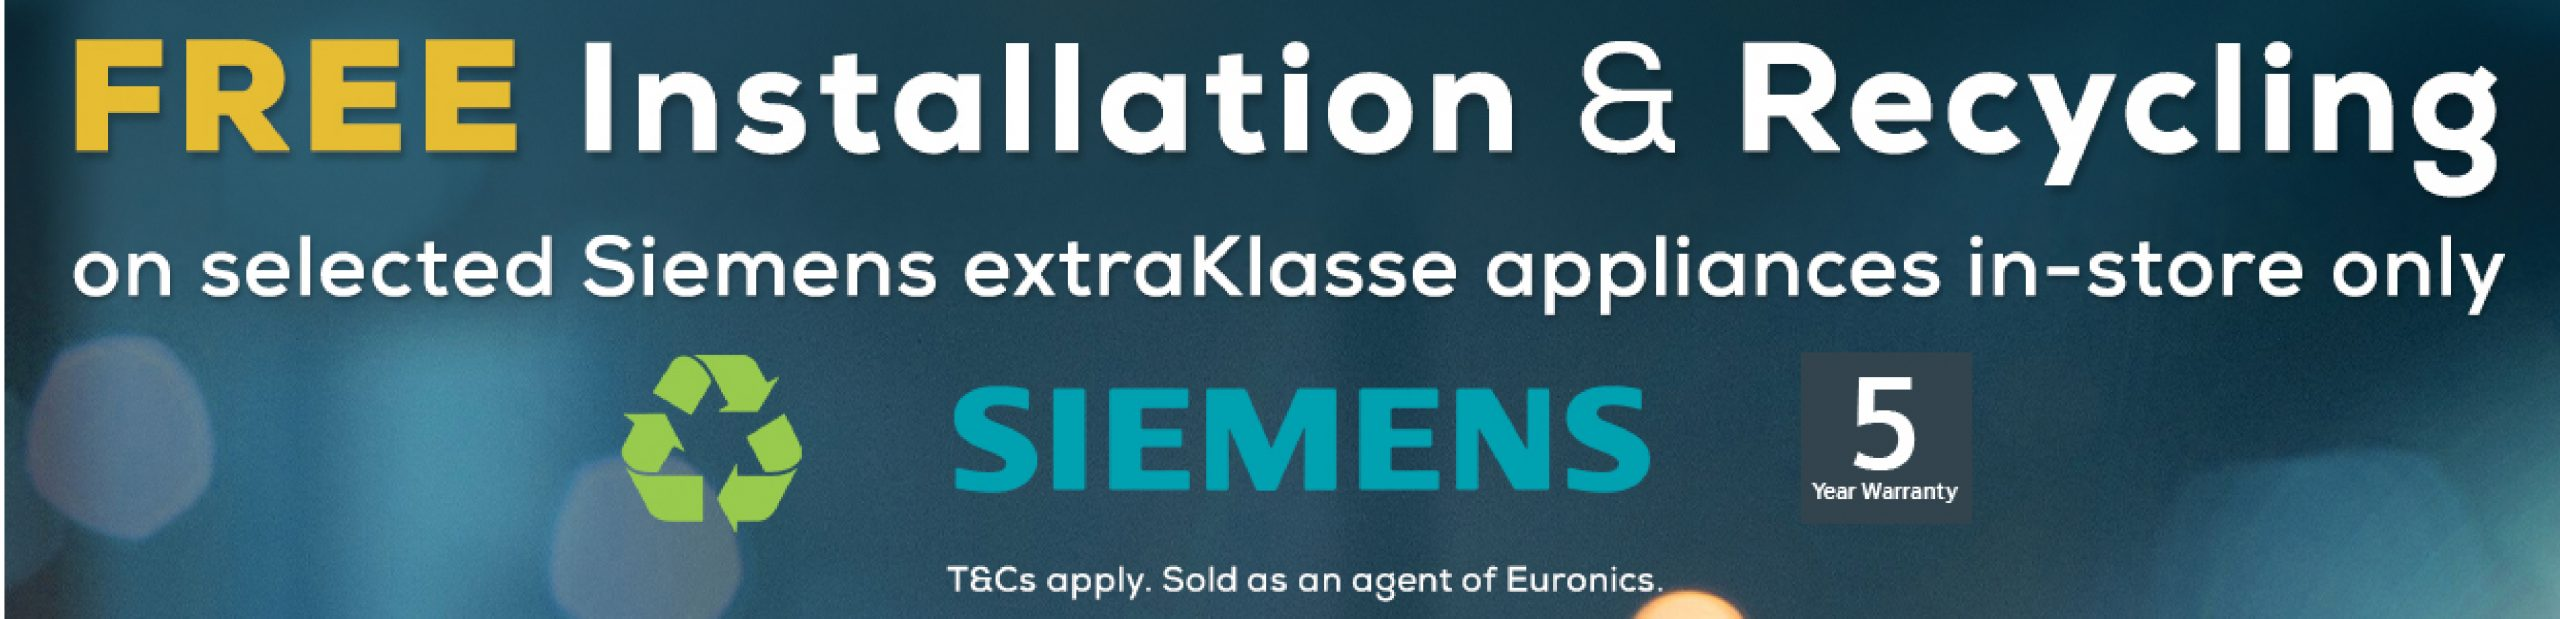 Siemens Free Install & Recycle Promotion